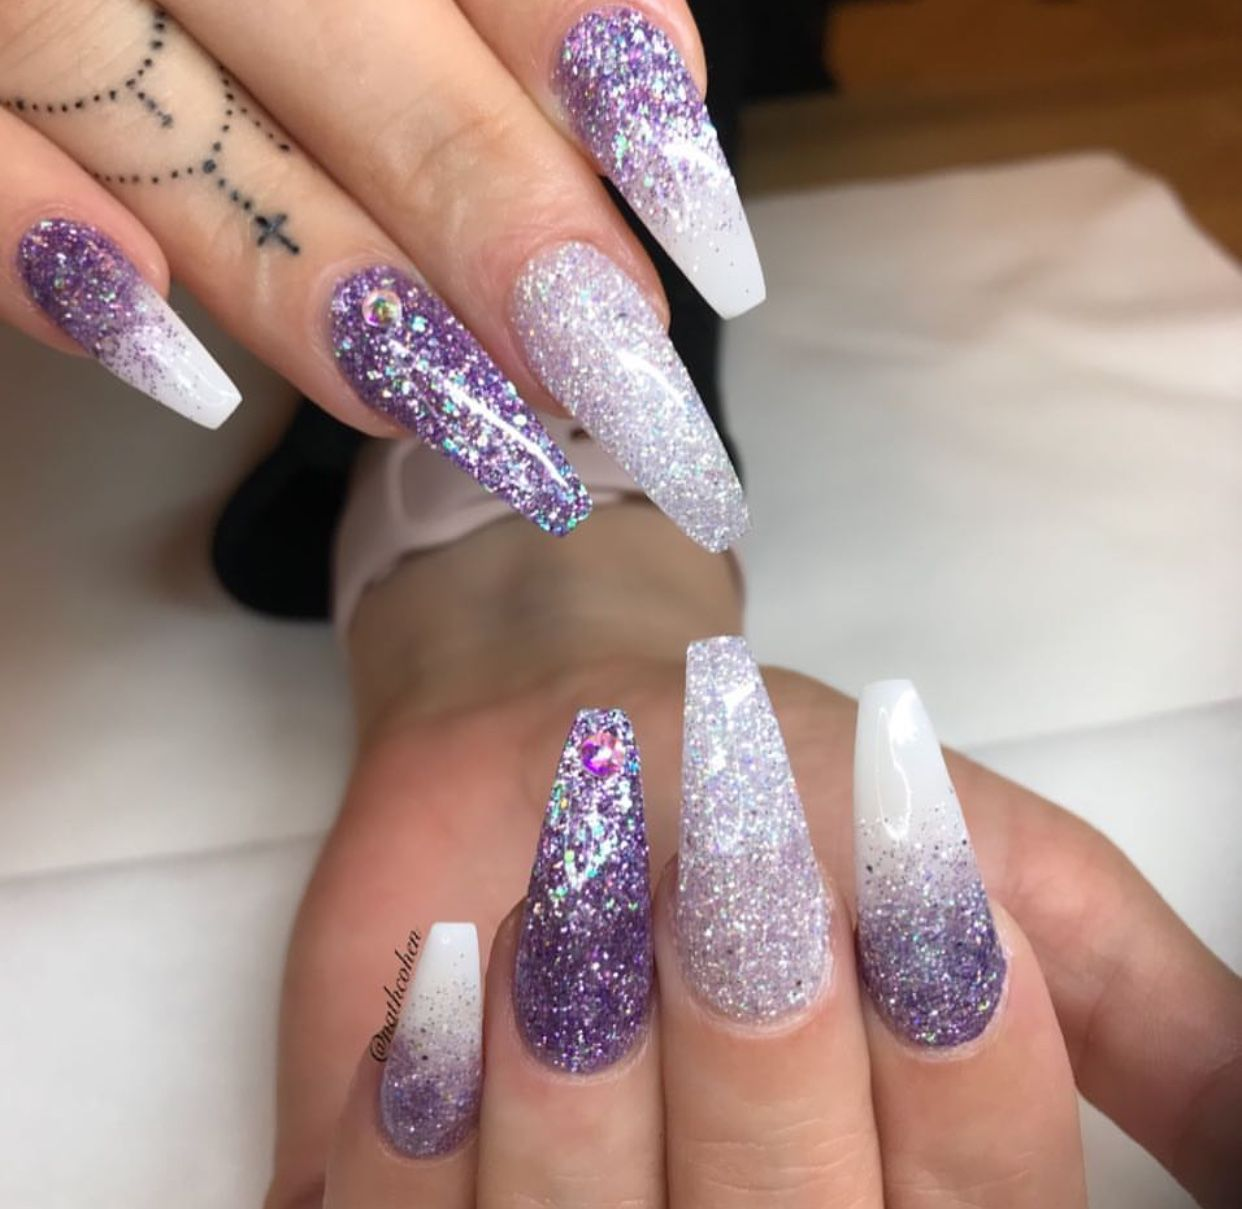 Purple White Nails | Glitter Nail Design | Coffin Acrylic Nails  #acrylicnails Pin: @amerishabeauty - Purple White Nails Glitter Nail Design Coffin Acrylic Nails